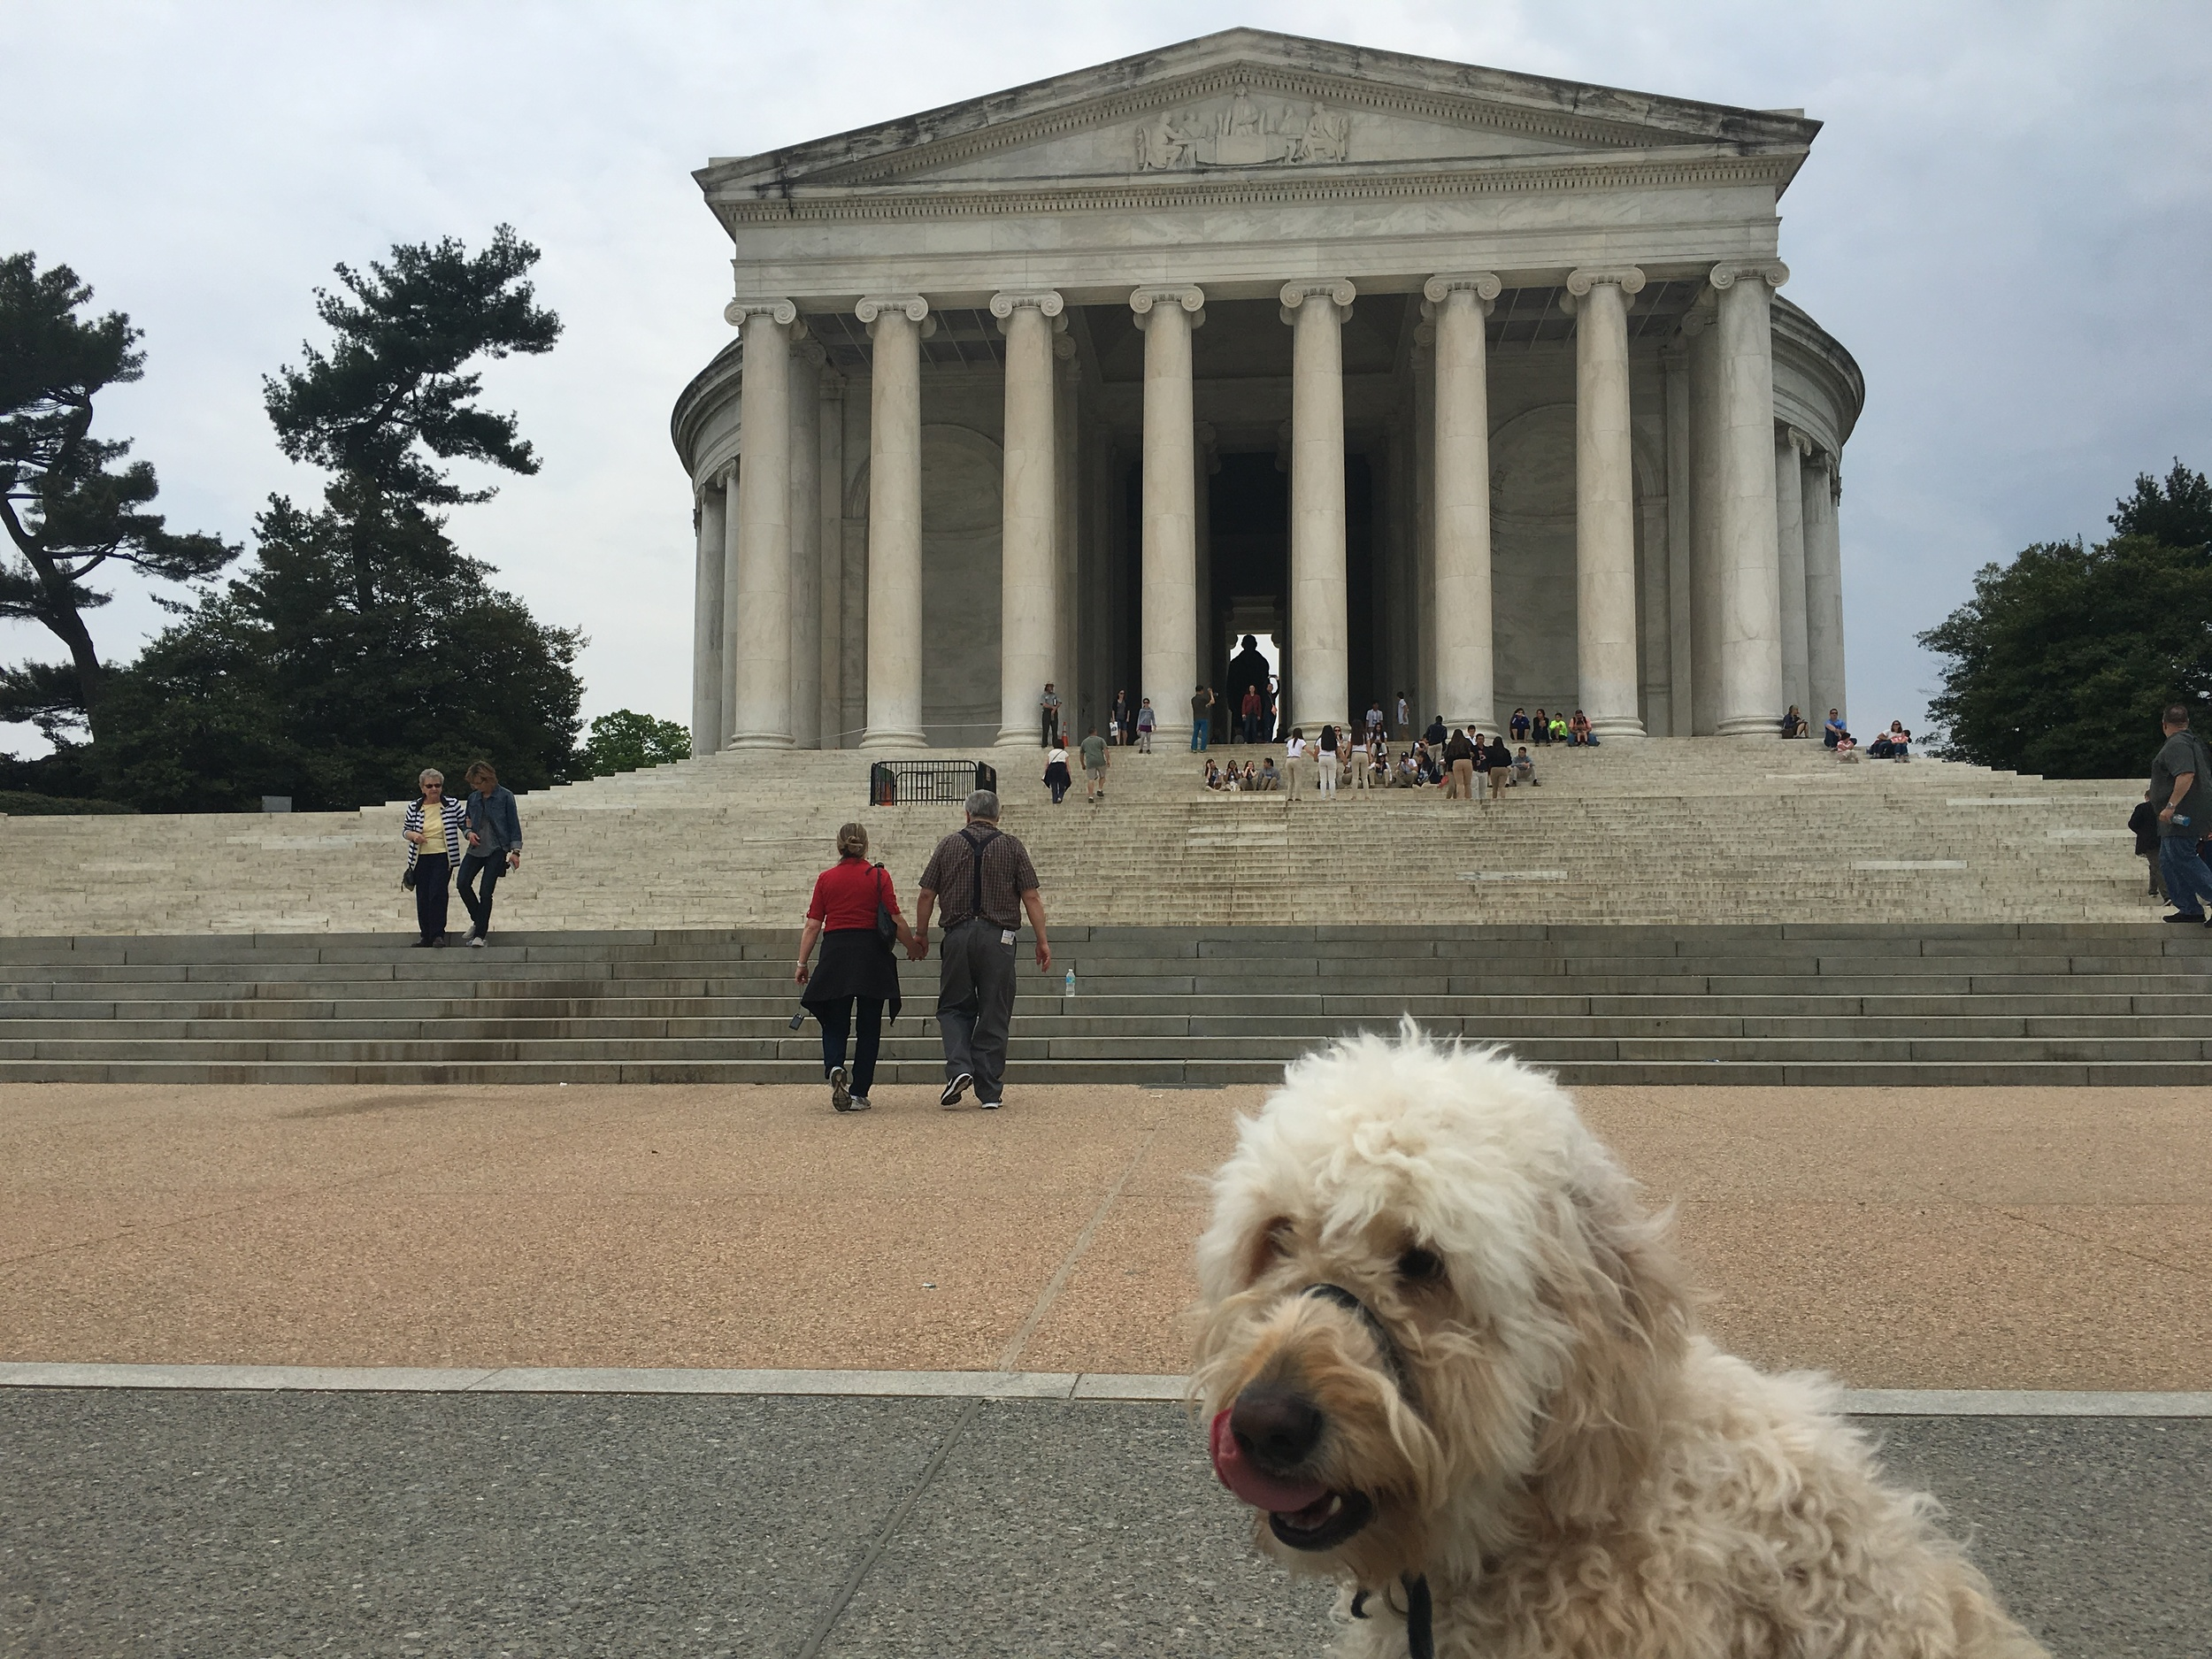 Licking his chops at the Jefferson Monument.